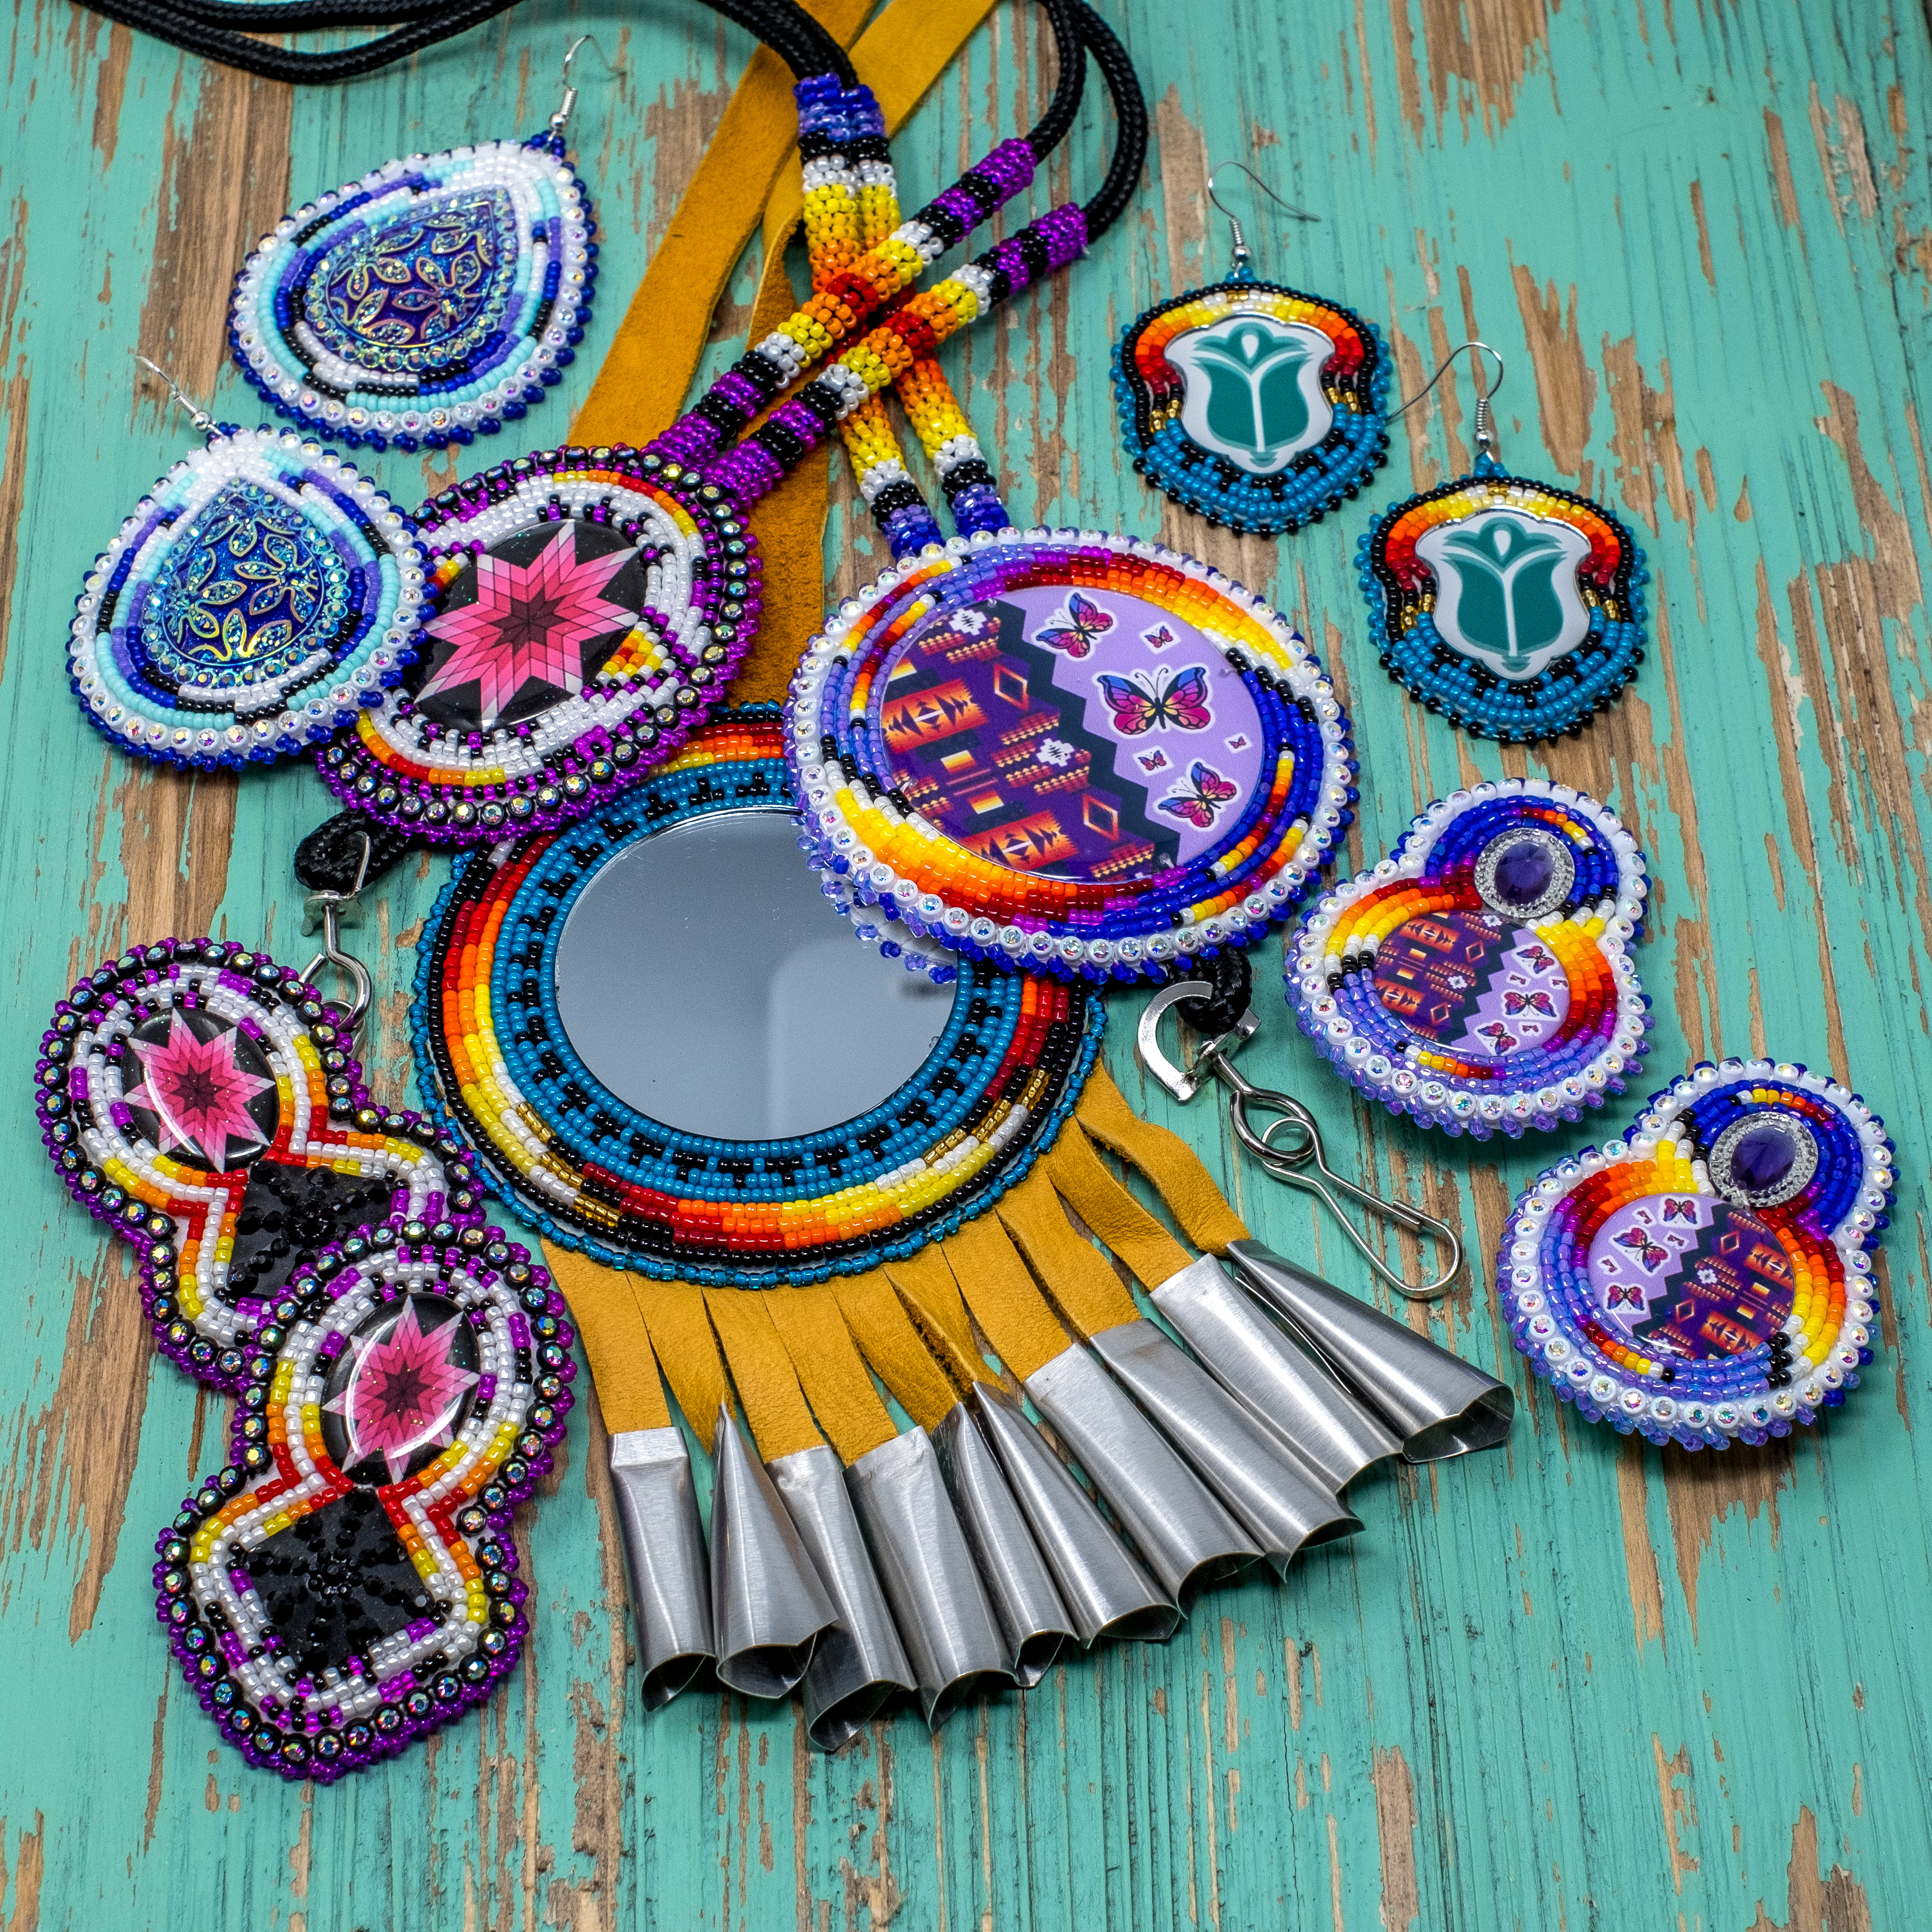 Using buckskin, beads, and 'jingles, Apache designer creates wearable art